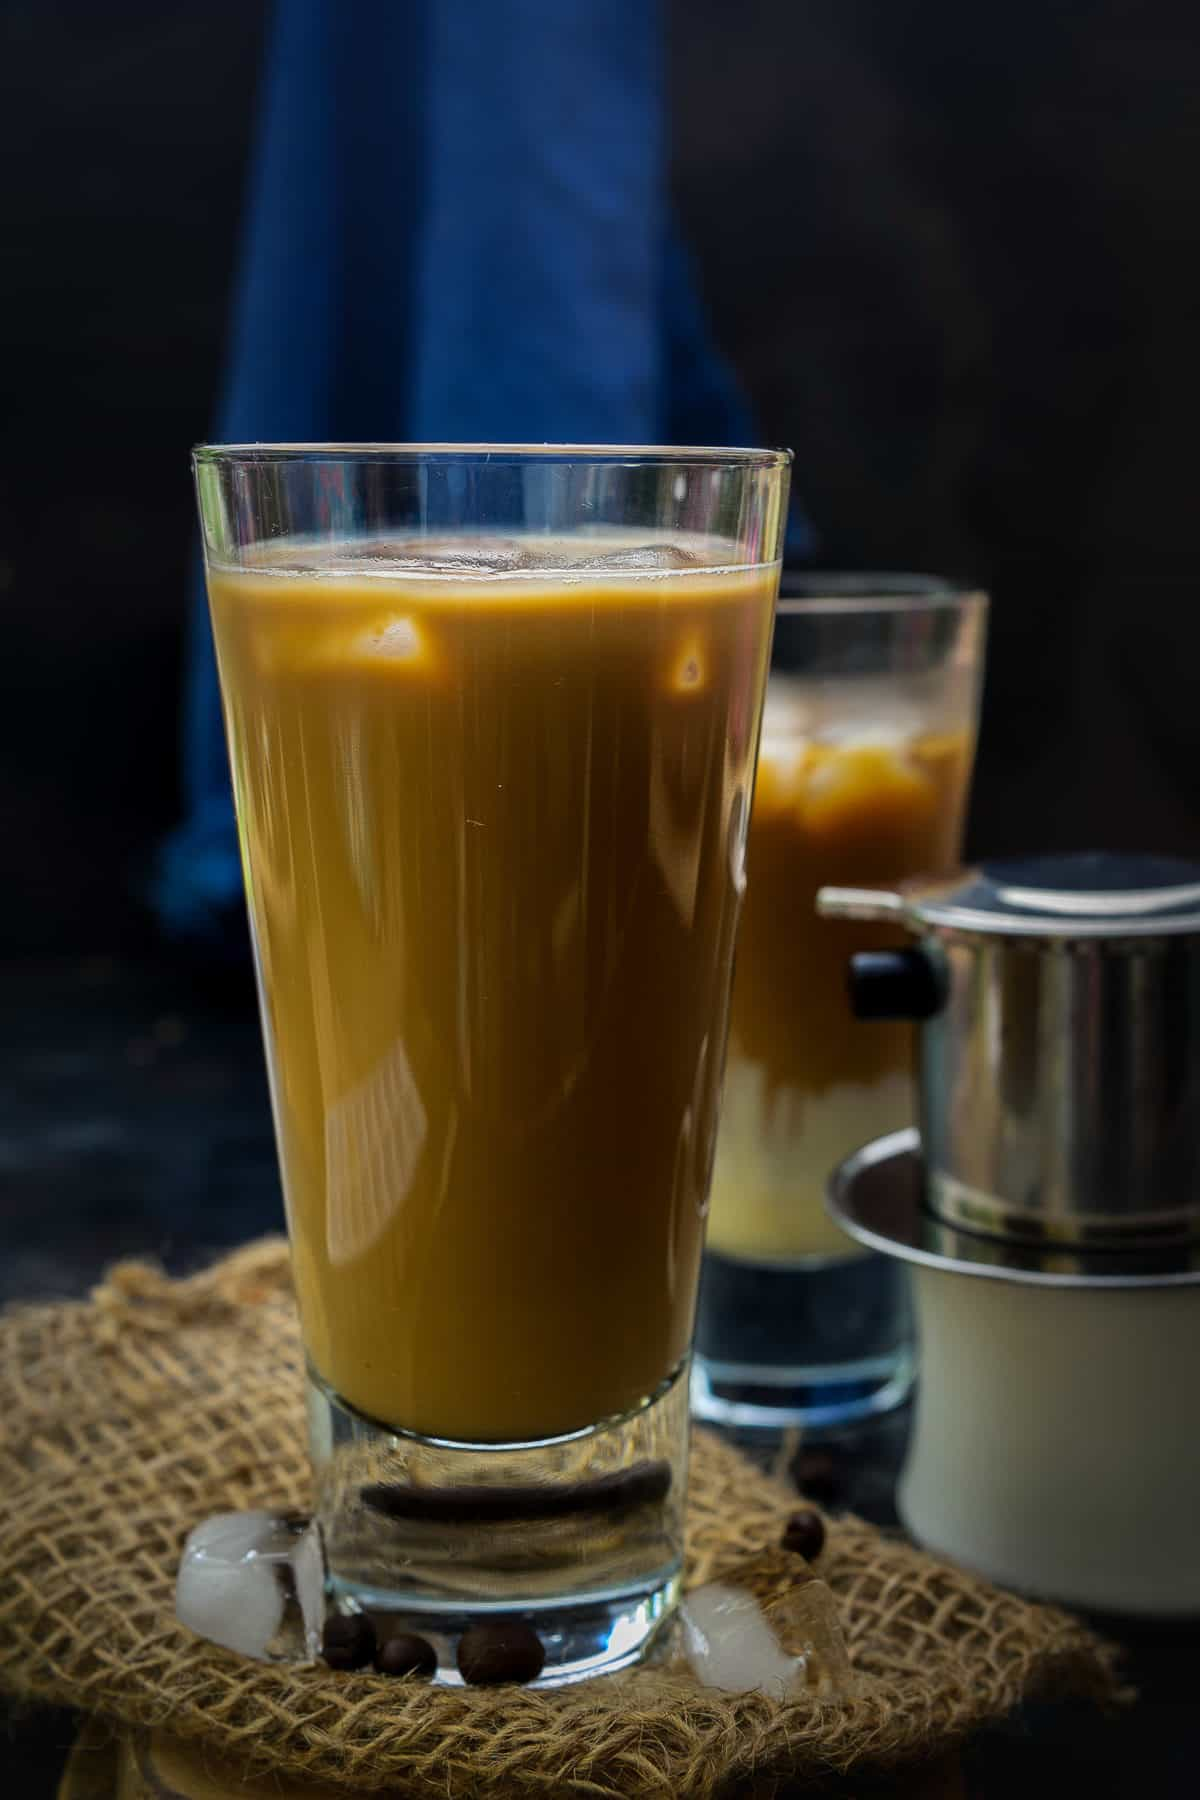 Vietnamese coffee served in a glass.